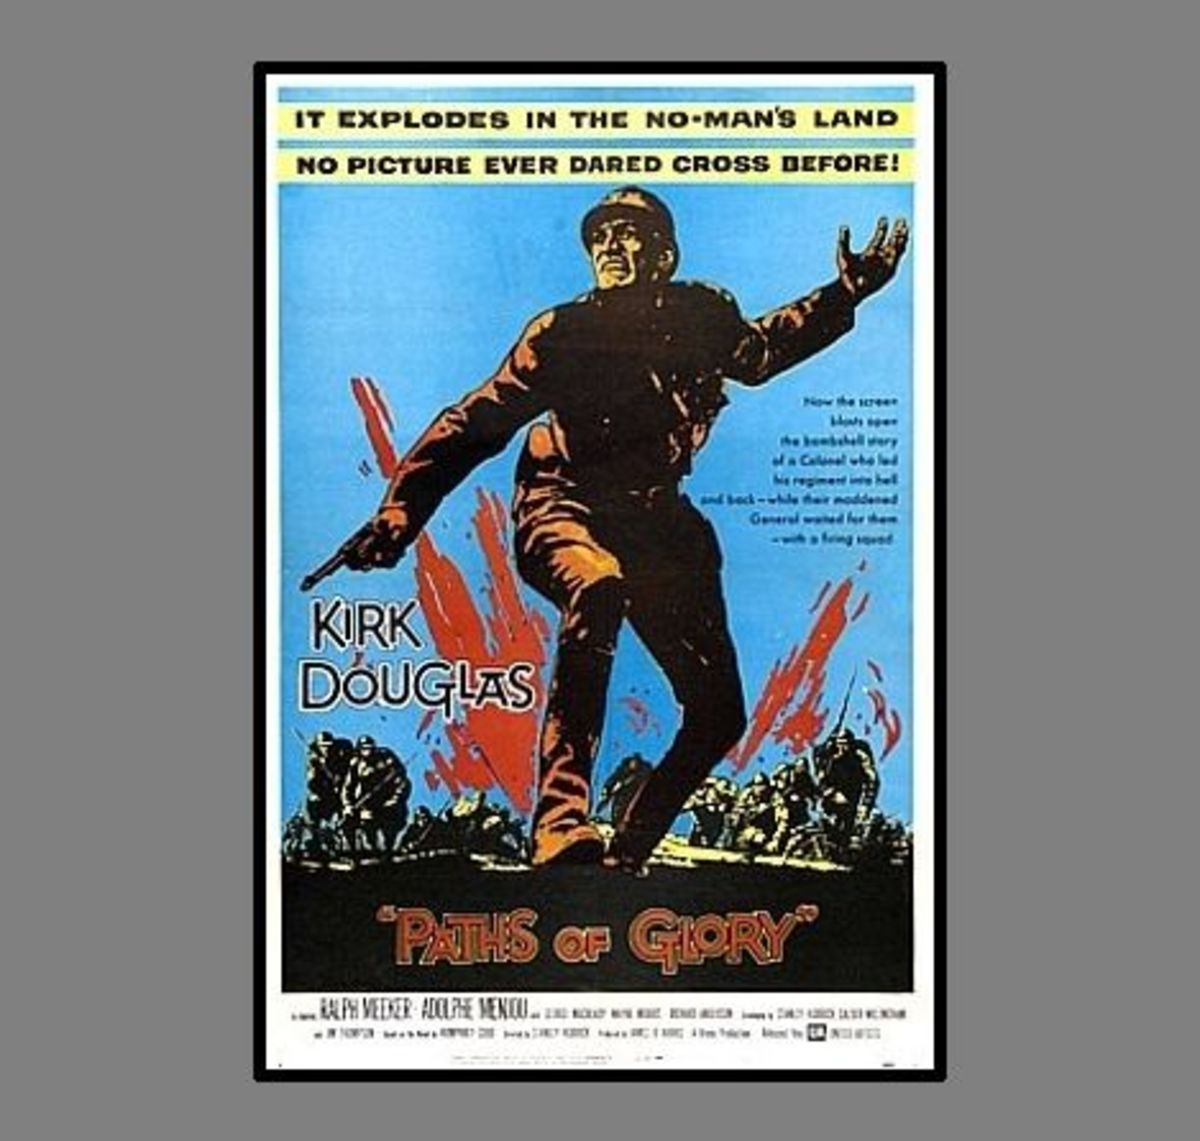 Paths of Glory (1957) - Starring Kirk Douglas, based on the execution of four French corporals in WW1.